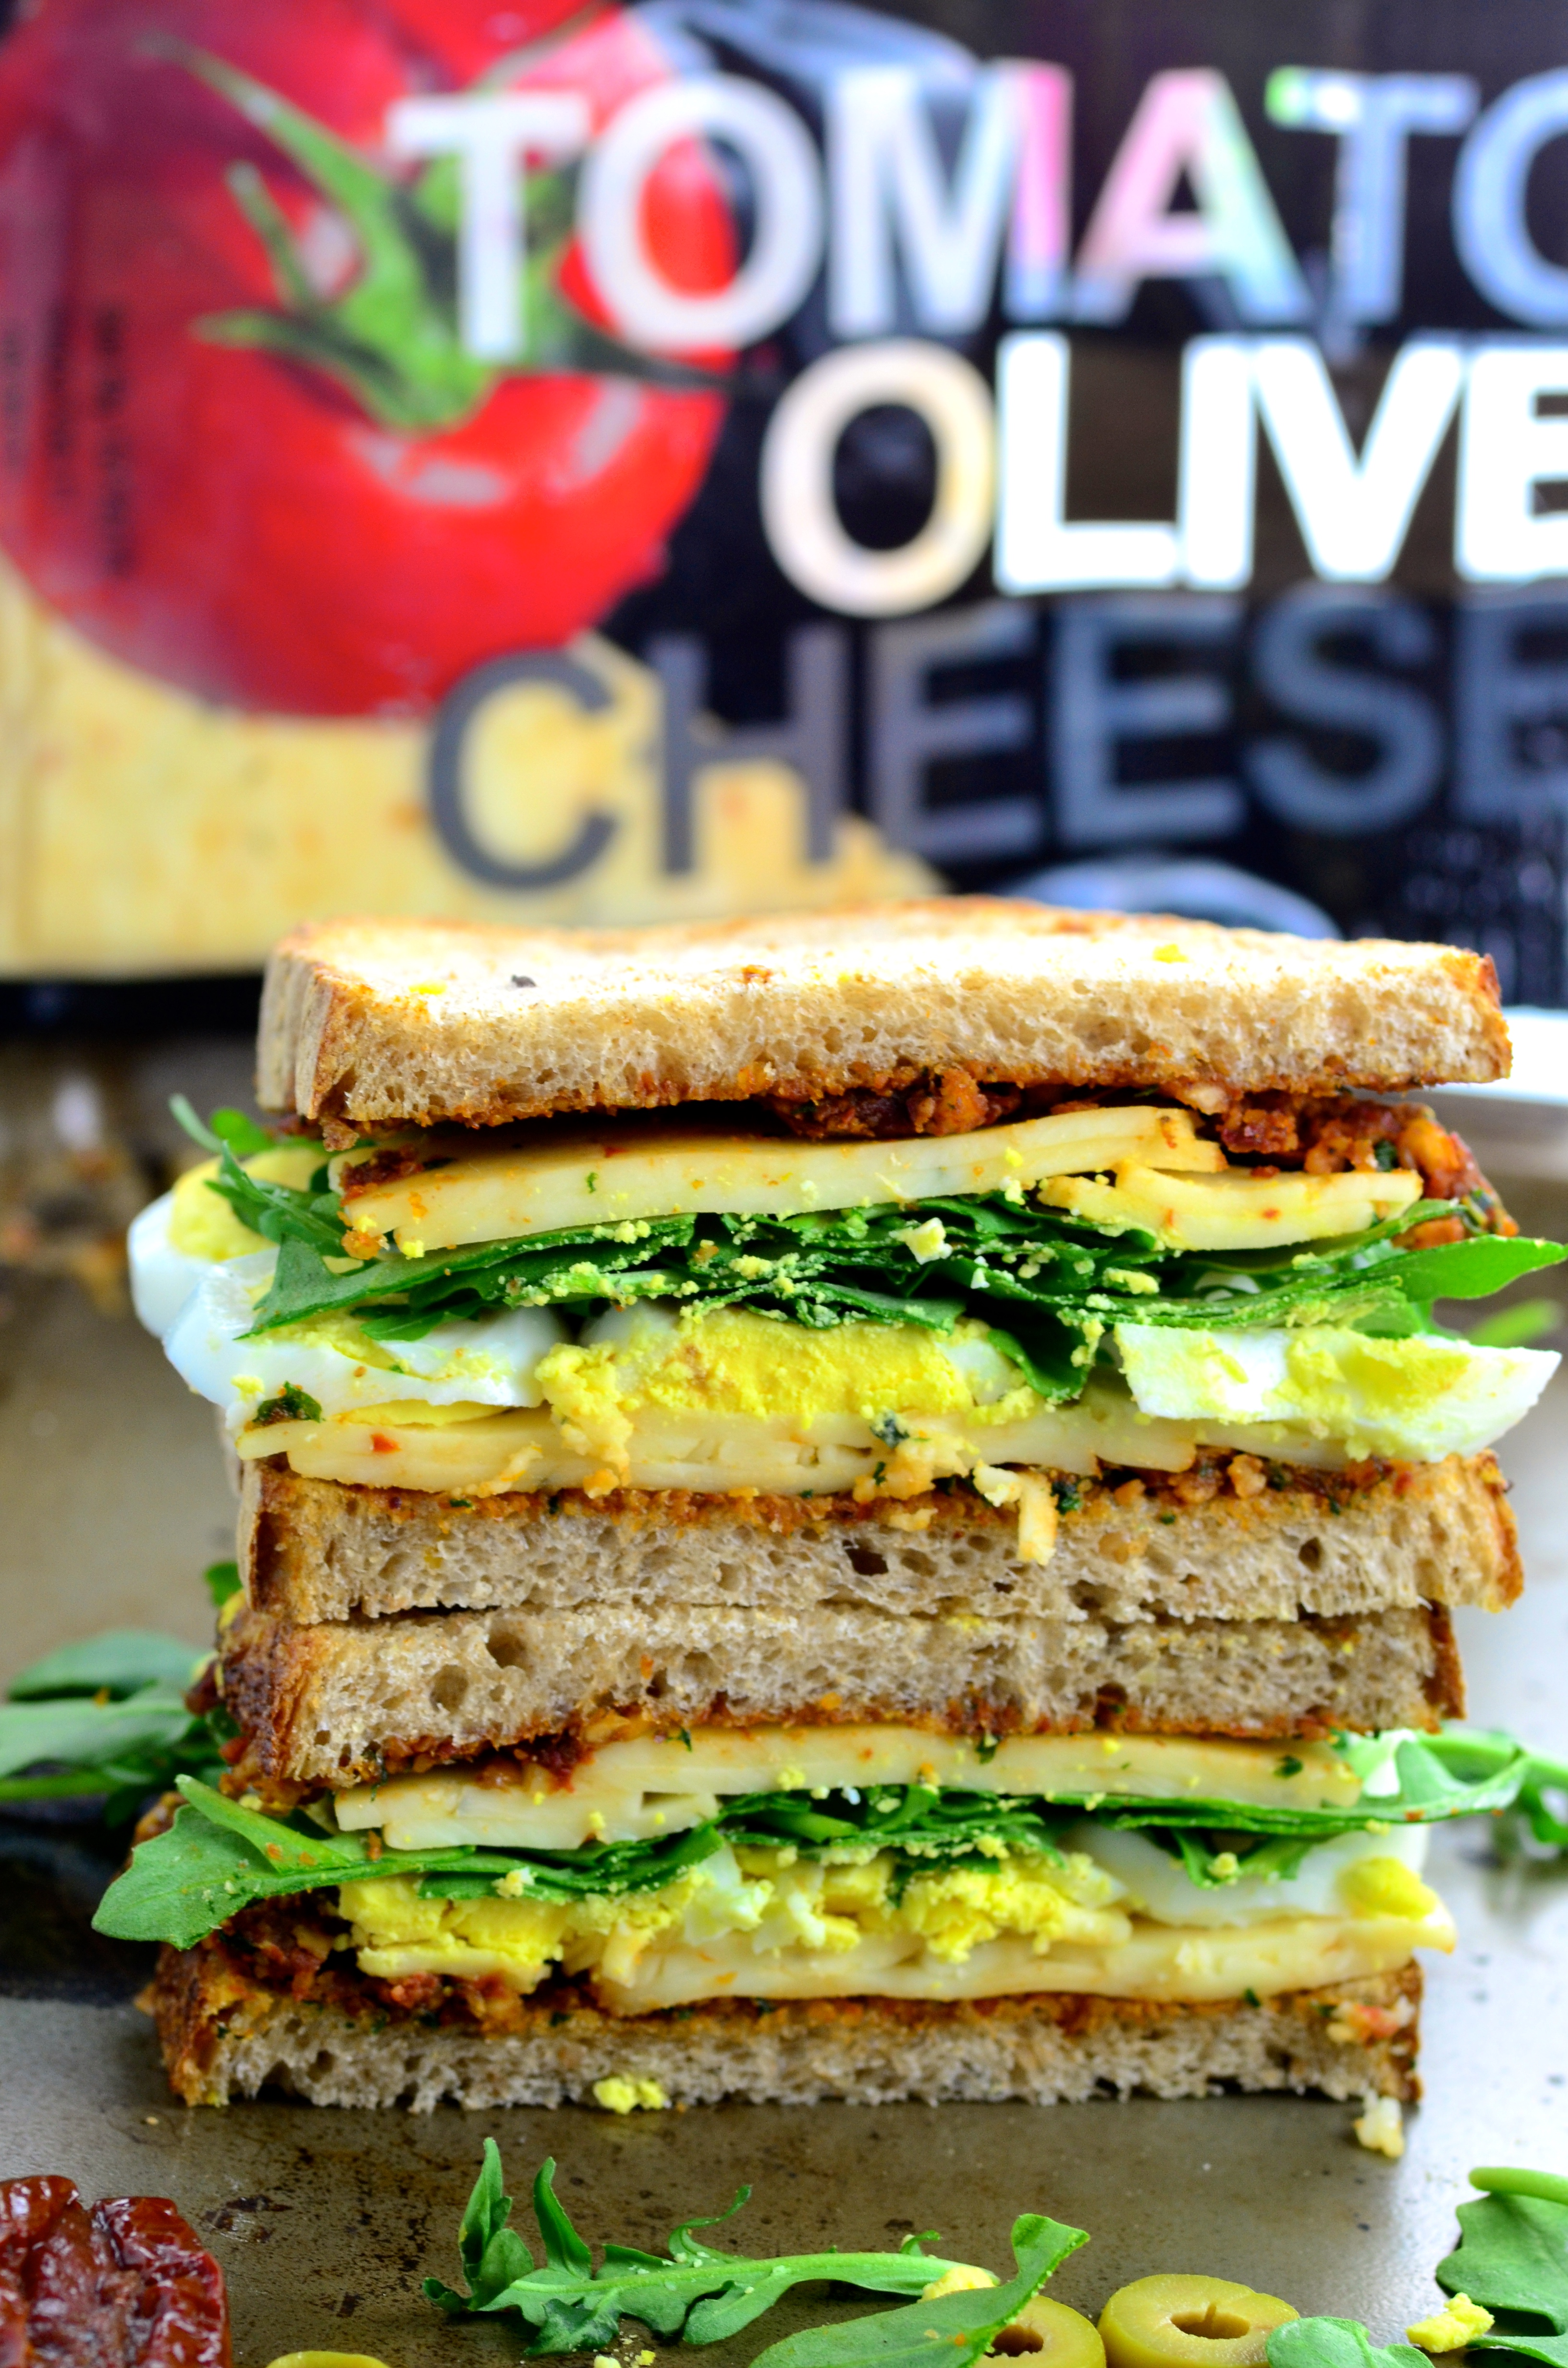 Tomato Olive Cheese Sandwich